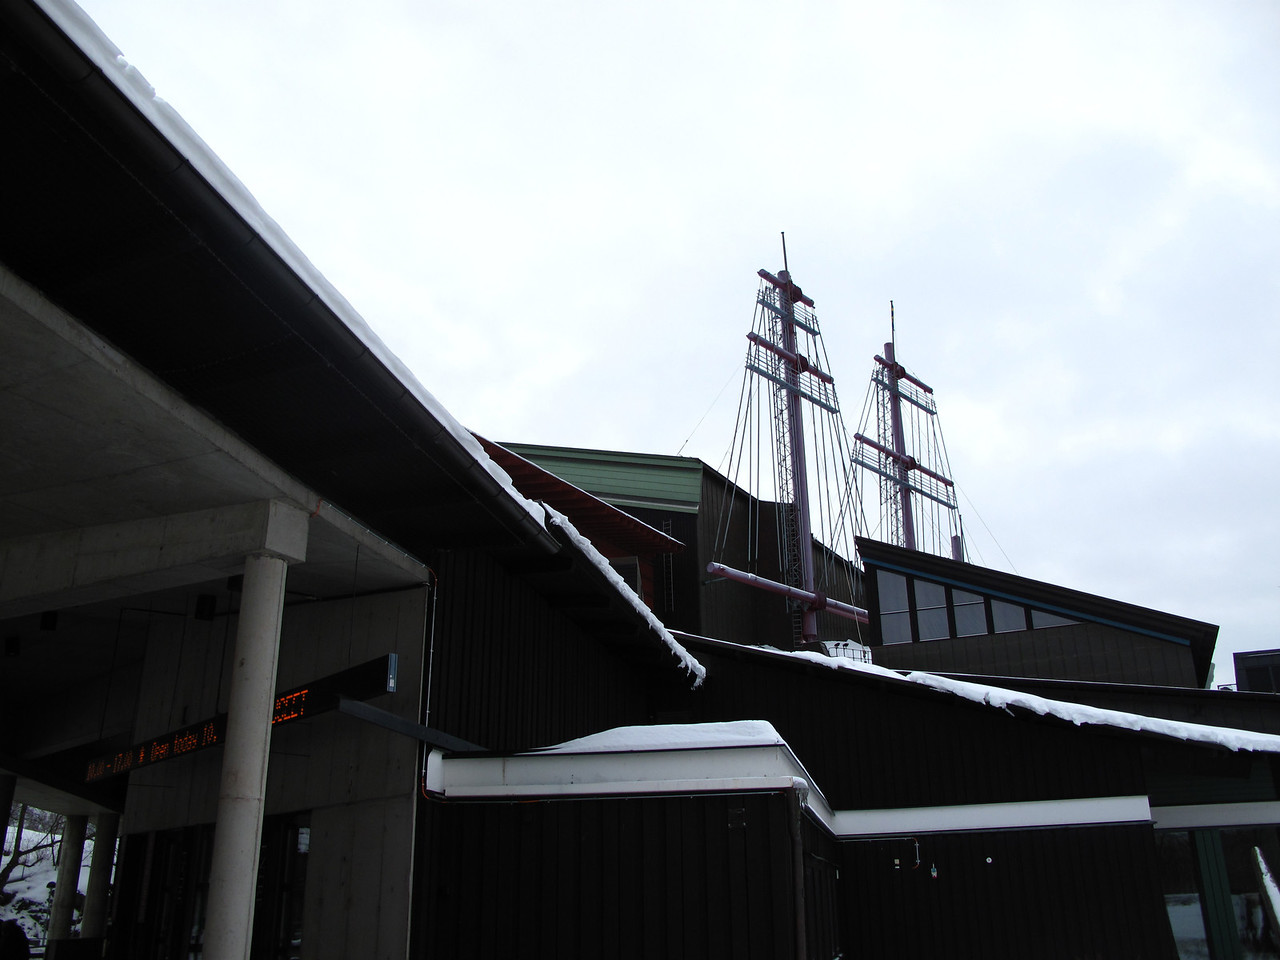 On the exterior, you can see how they built the building around the masts which are of original height and protrude through the roof.